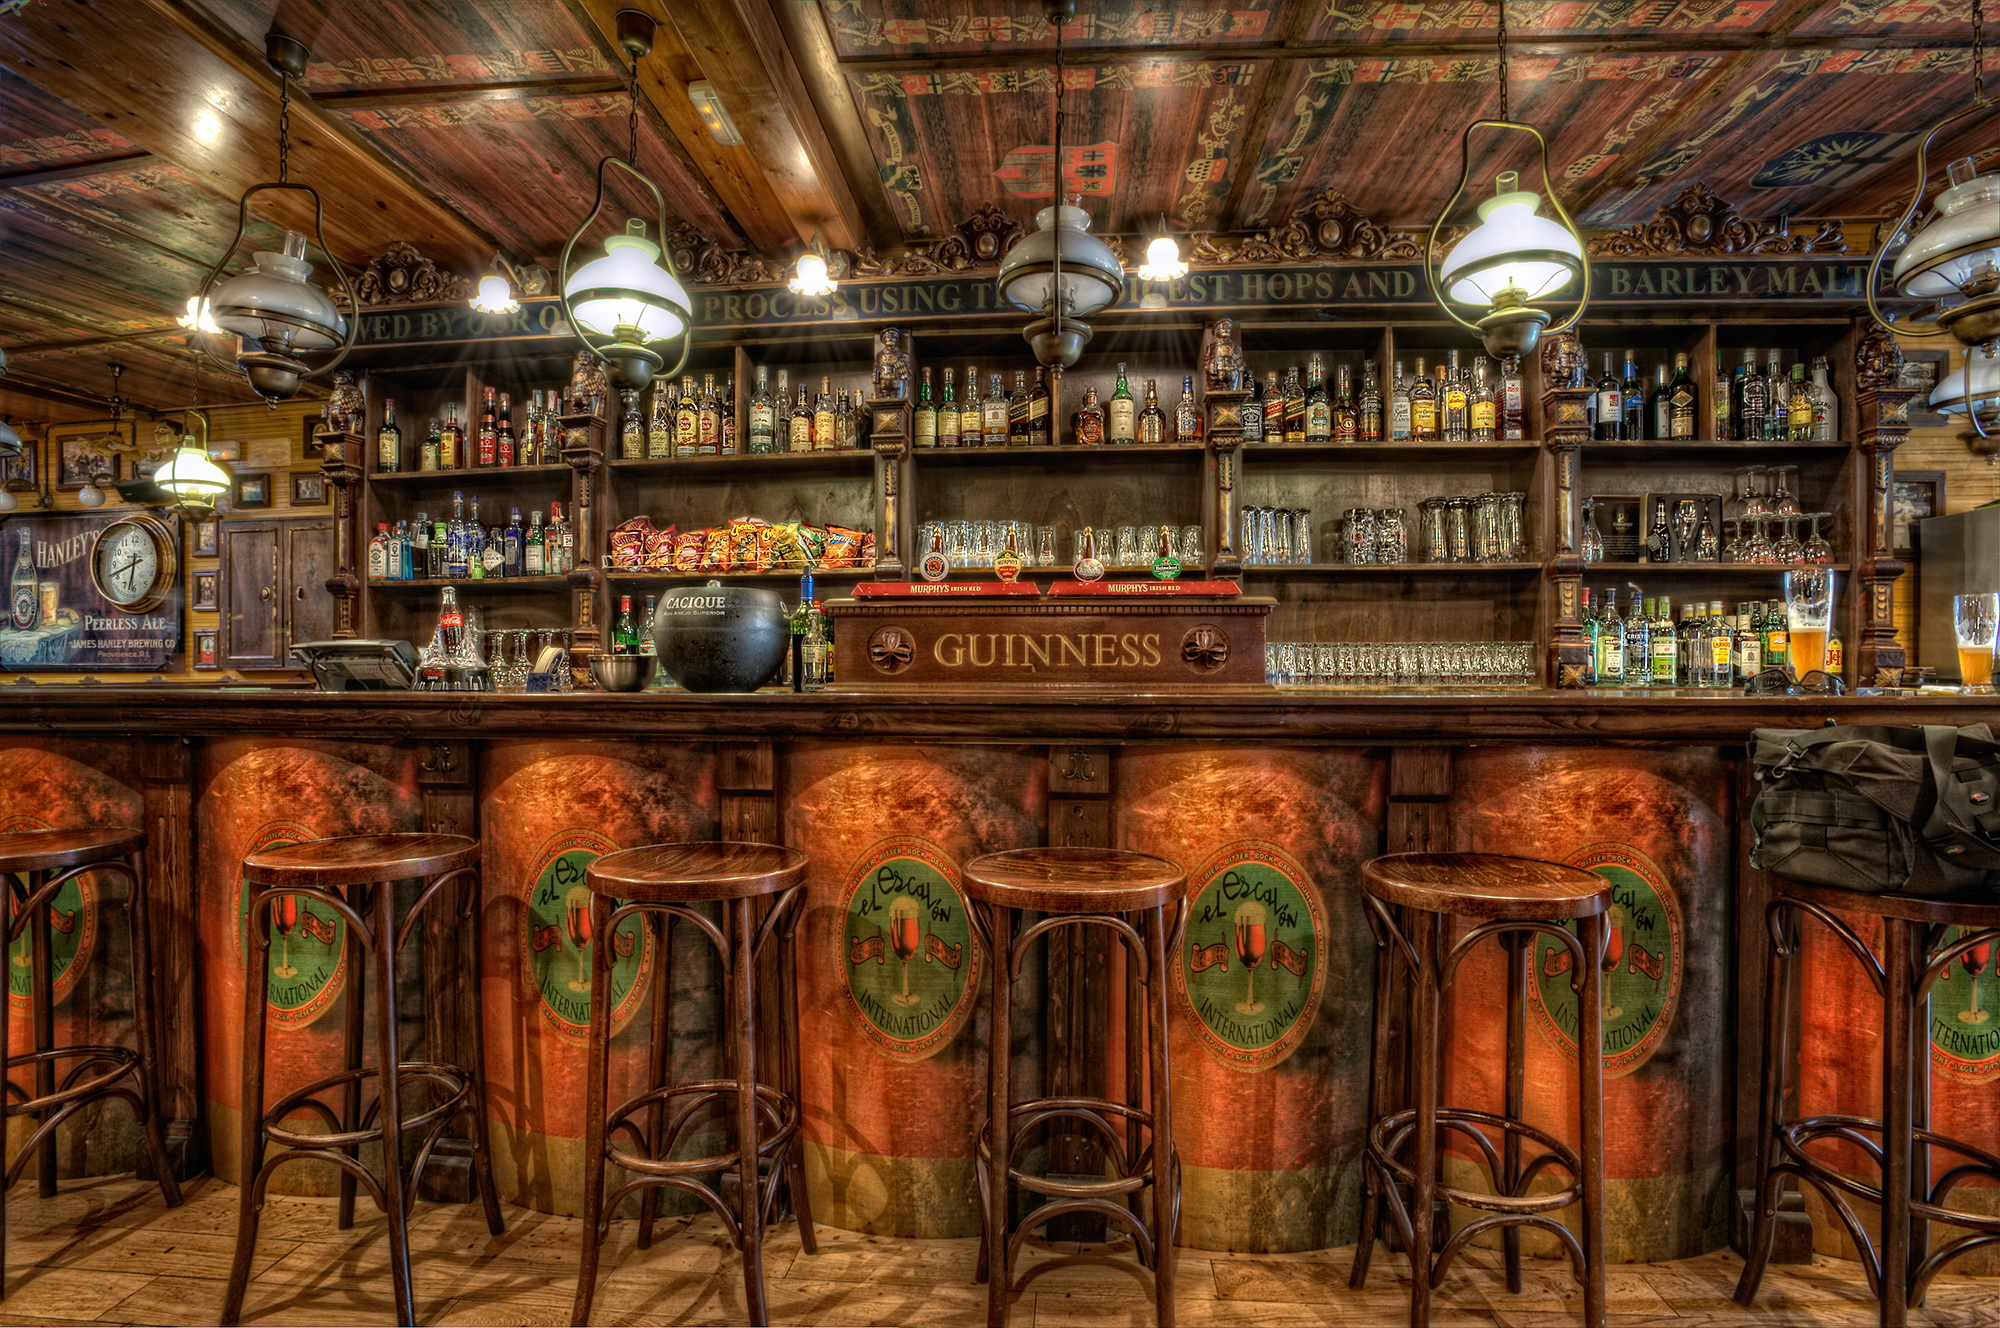 Interior Chairs Ceiling HDR Design Wooden Bar room